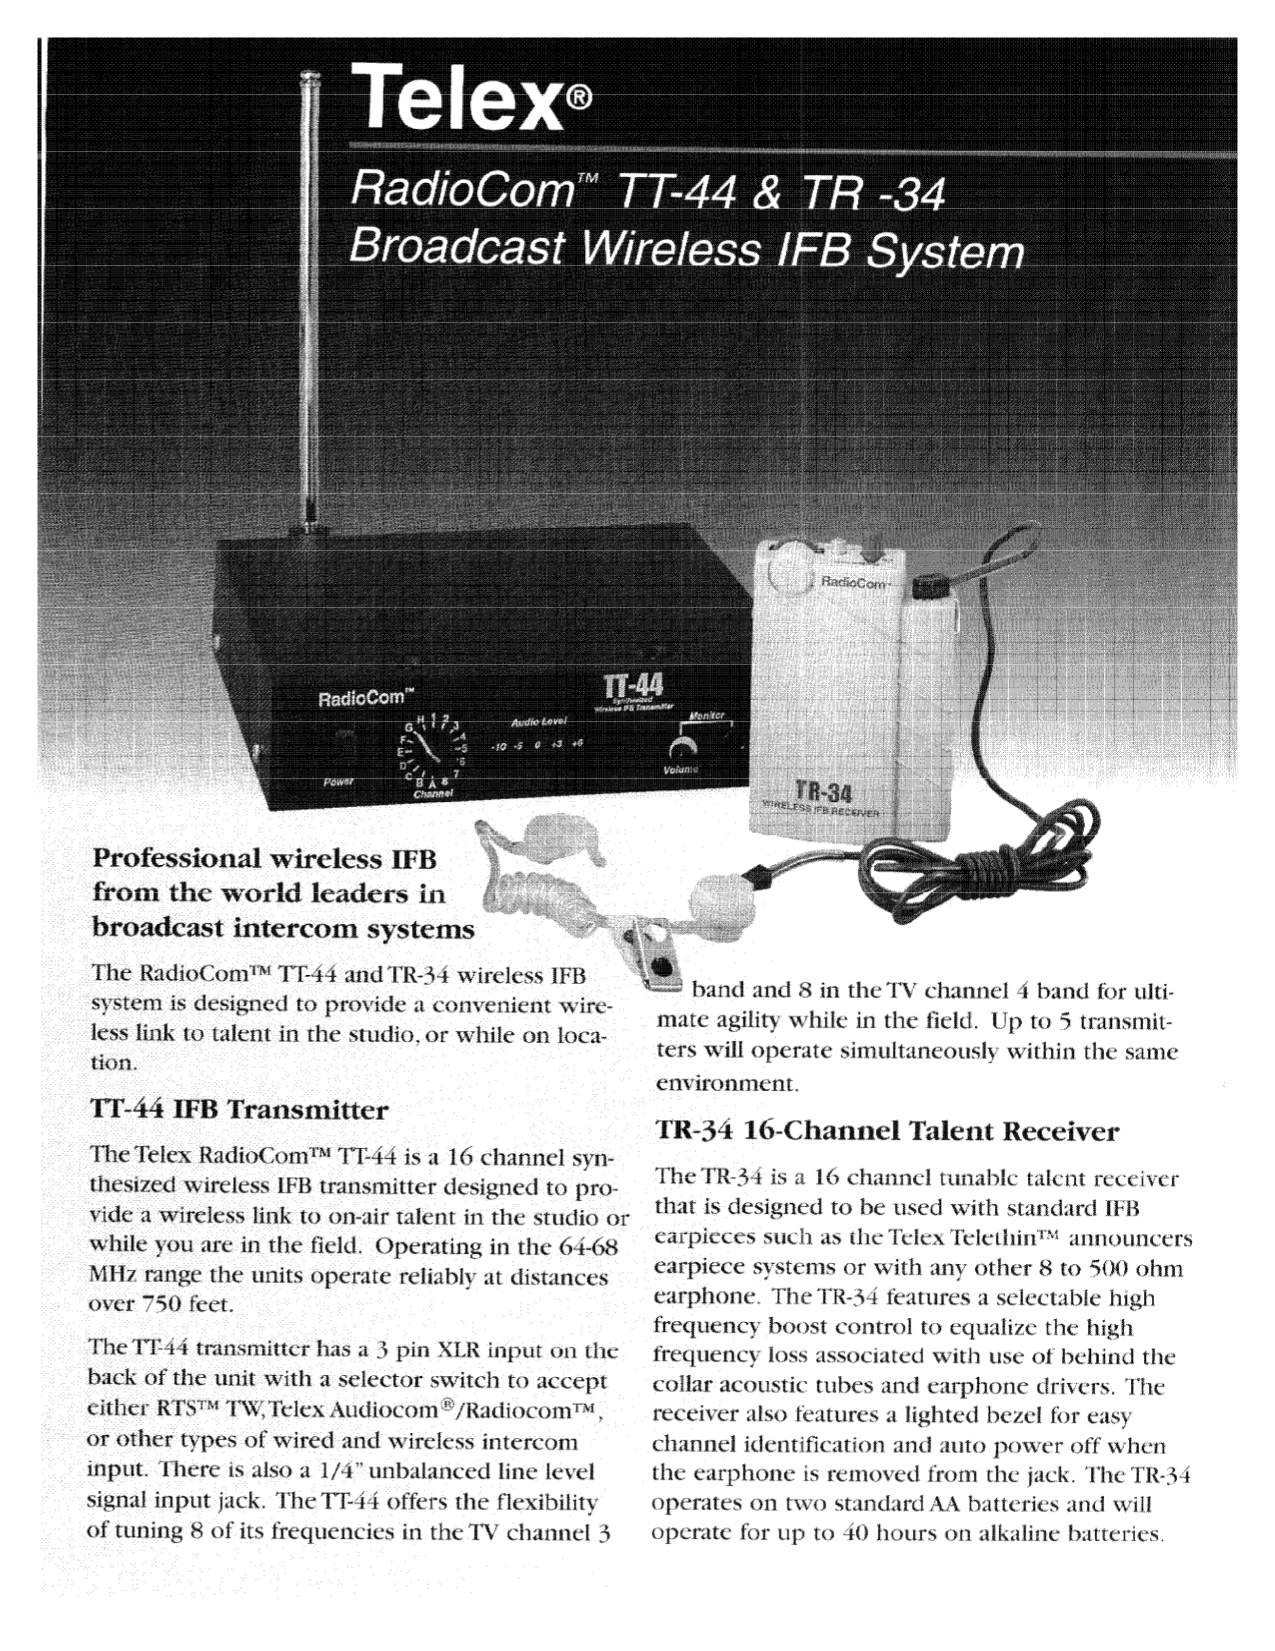 Download free pdf for Telex TT44 Wireless IFB System Other manual